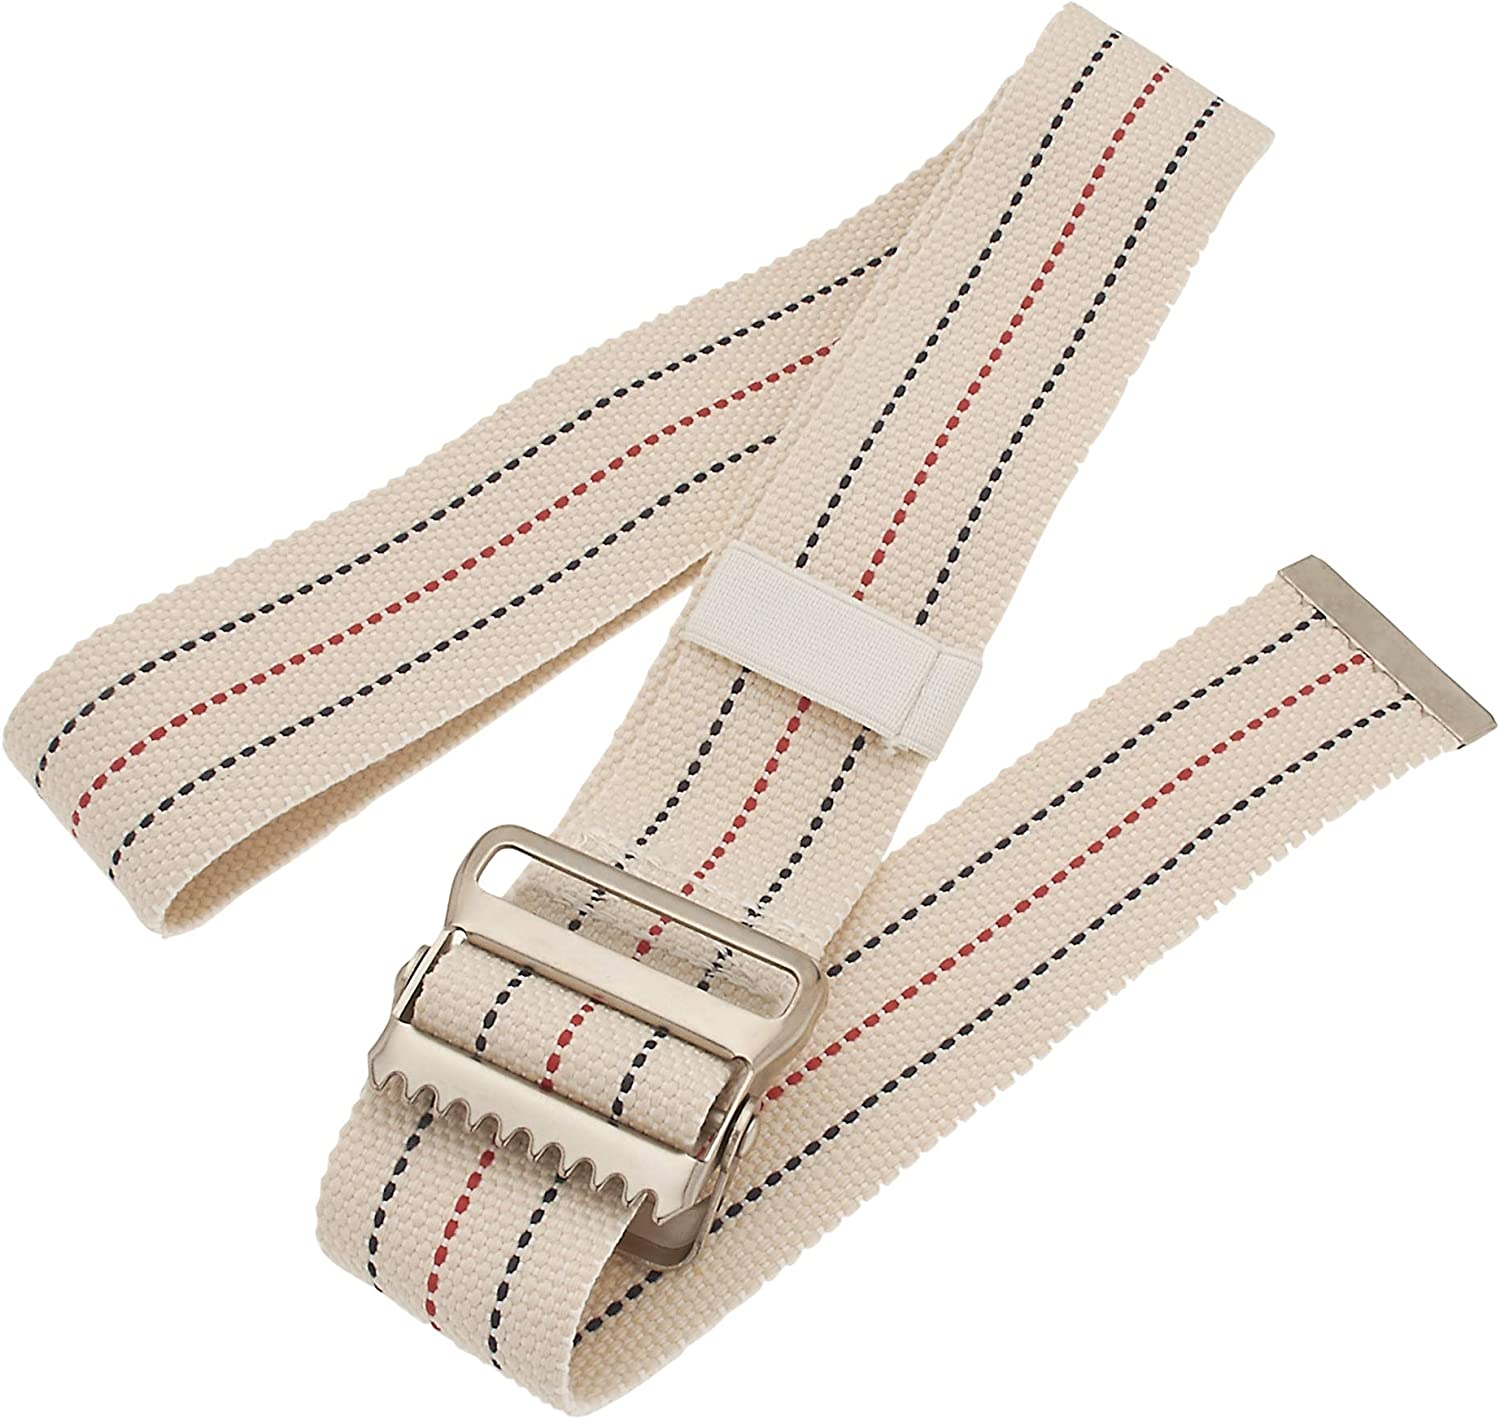 ASA Techmed Walking Gait Belt with Metal Buckle and Belt Loop Holder, Patient Transfer Belt - Mobility Aid for Caregivers, Nurses, Home Health Aides, Physical Therapists - Beige - 54